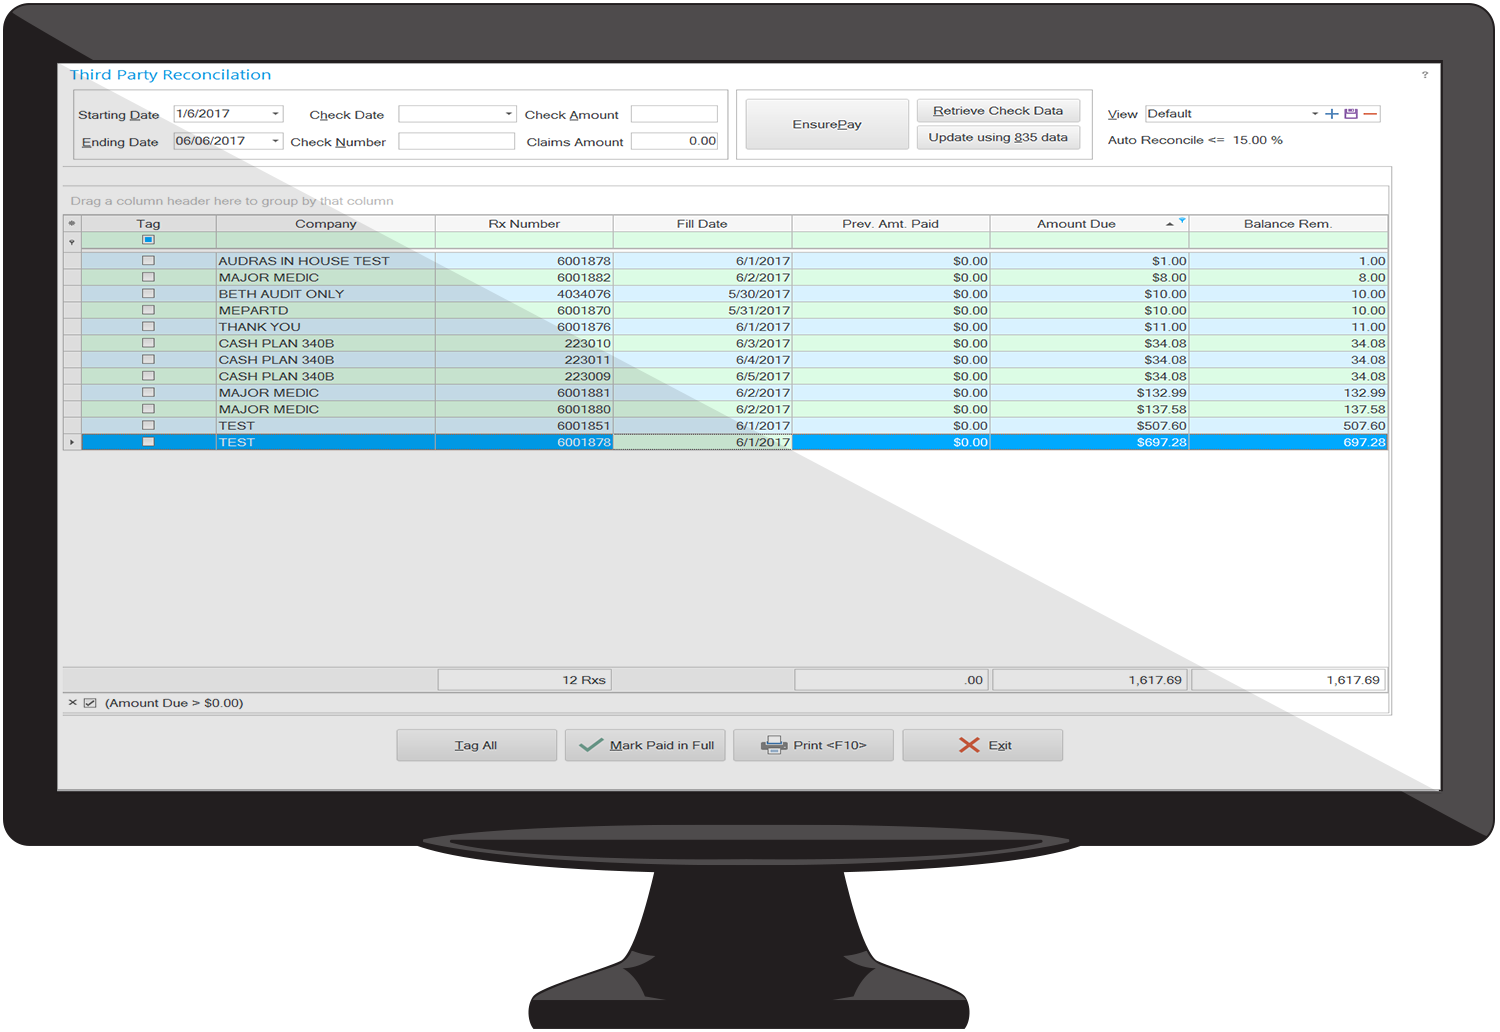 WinRx multi-site pharamcy management software report for processing claims.